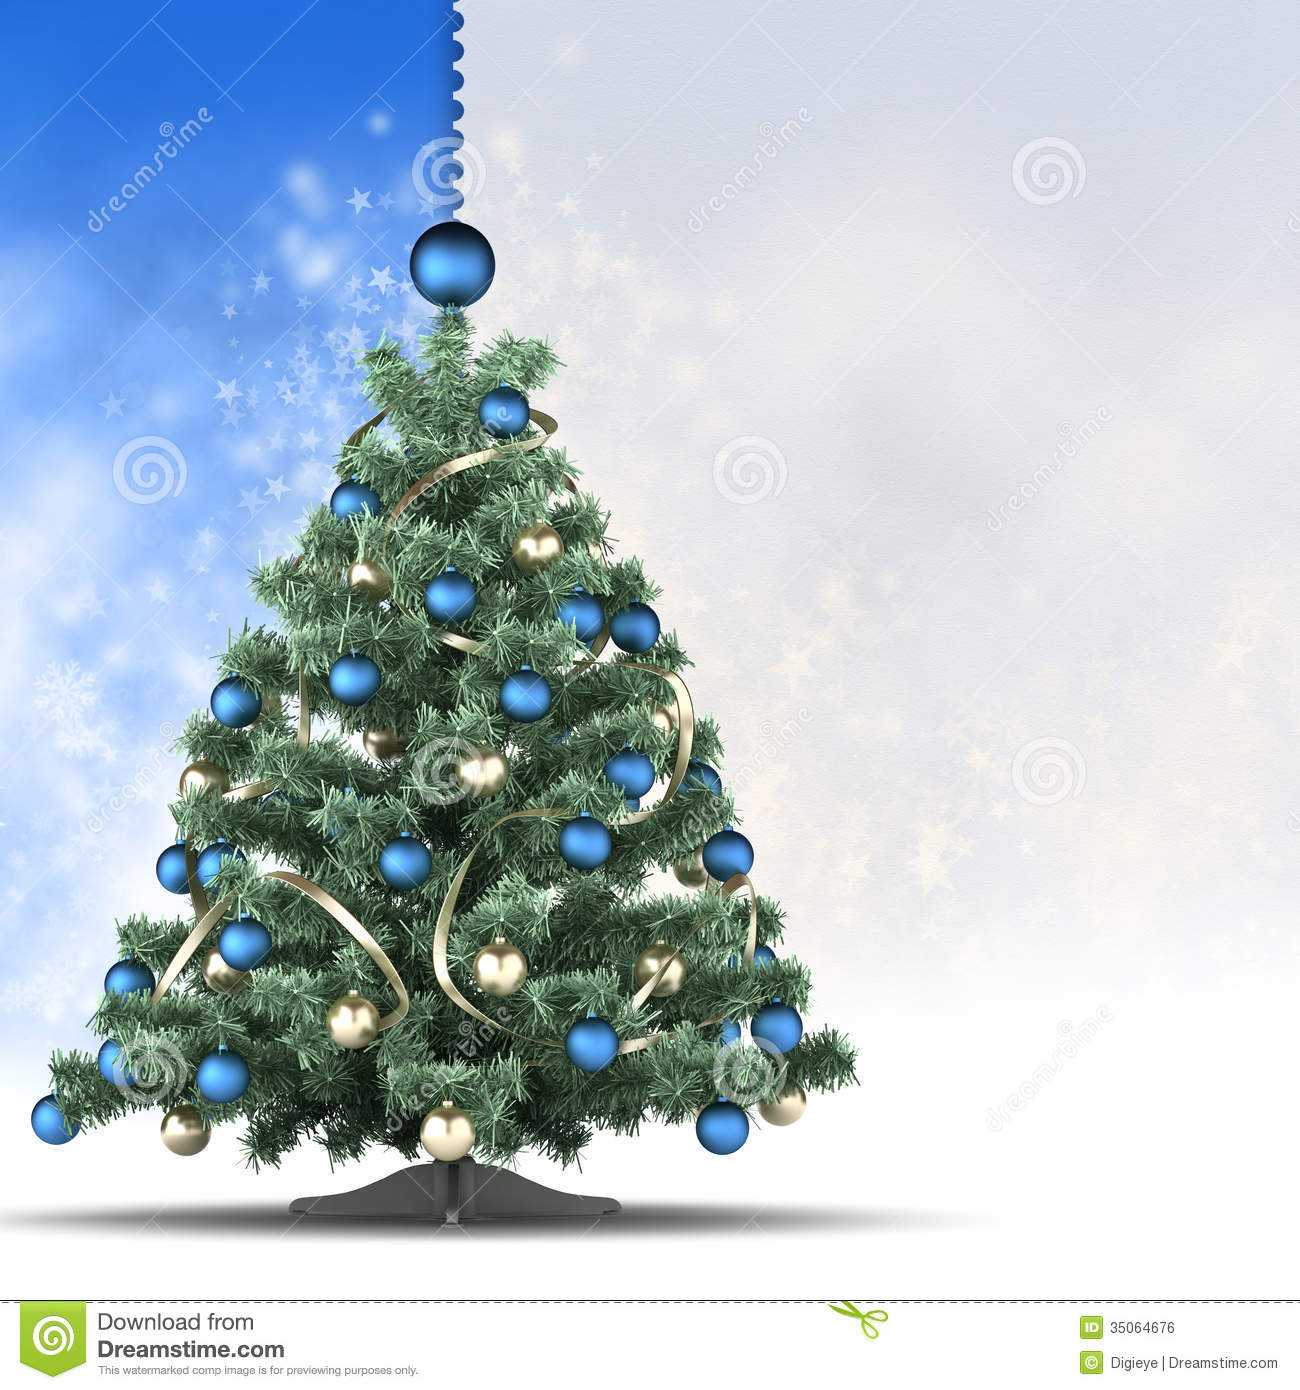 Christmas Card Template - Xmas Tree And Blank Space For Text Regarding Blank Christmas Card Templates Free